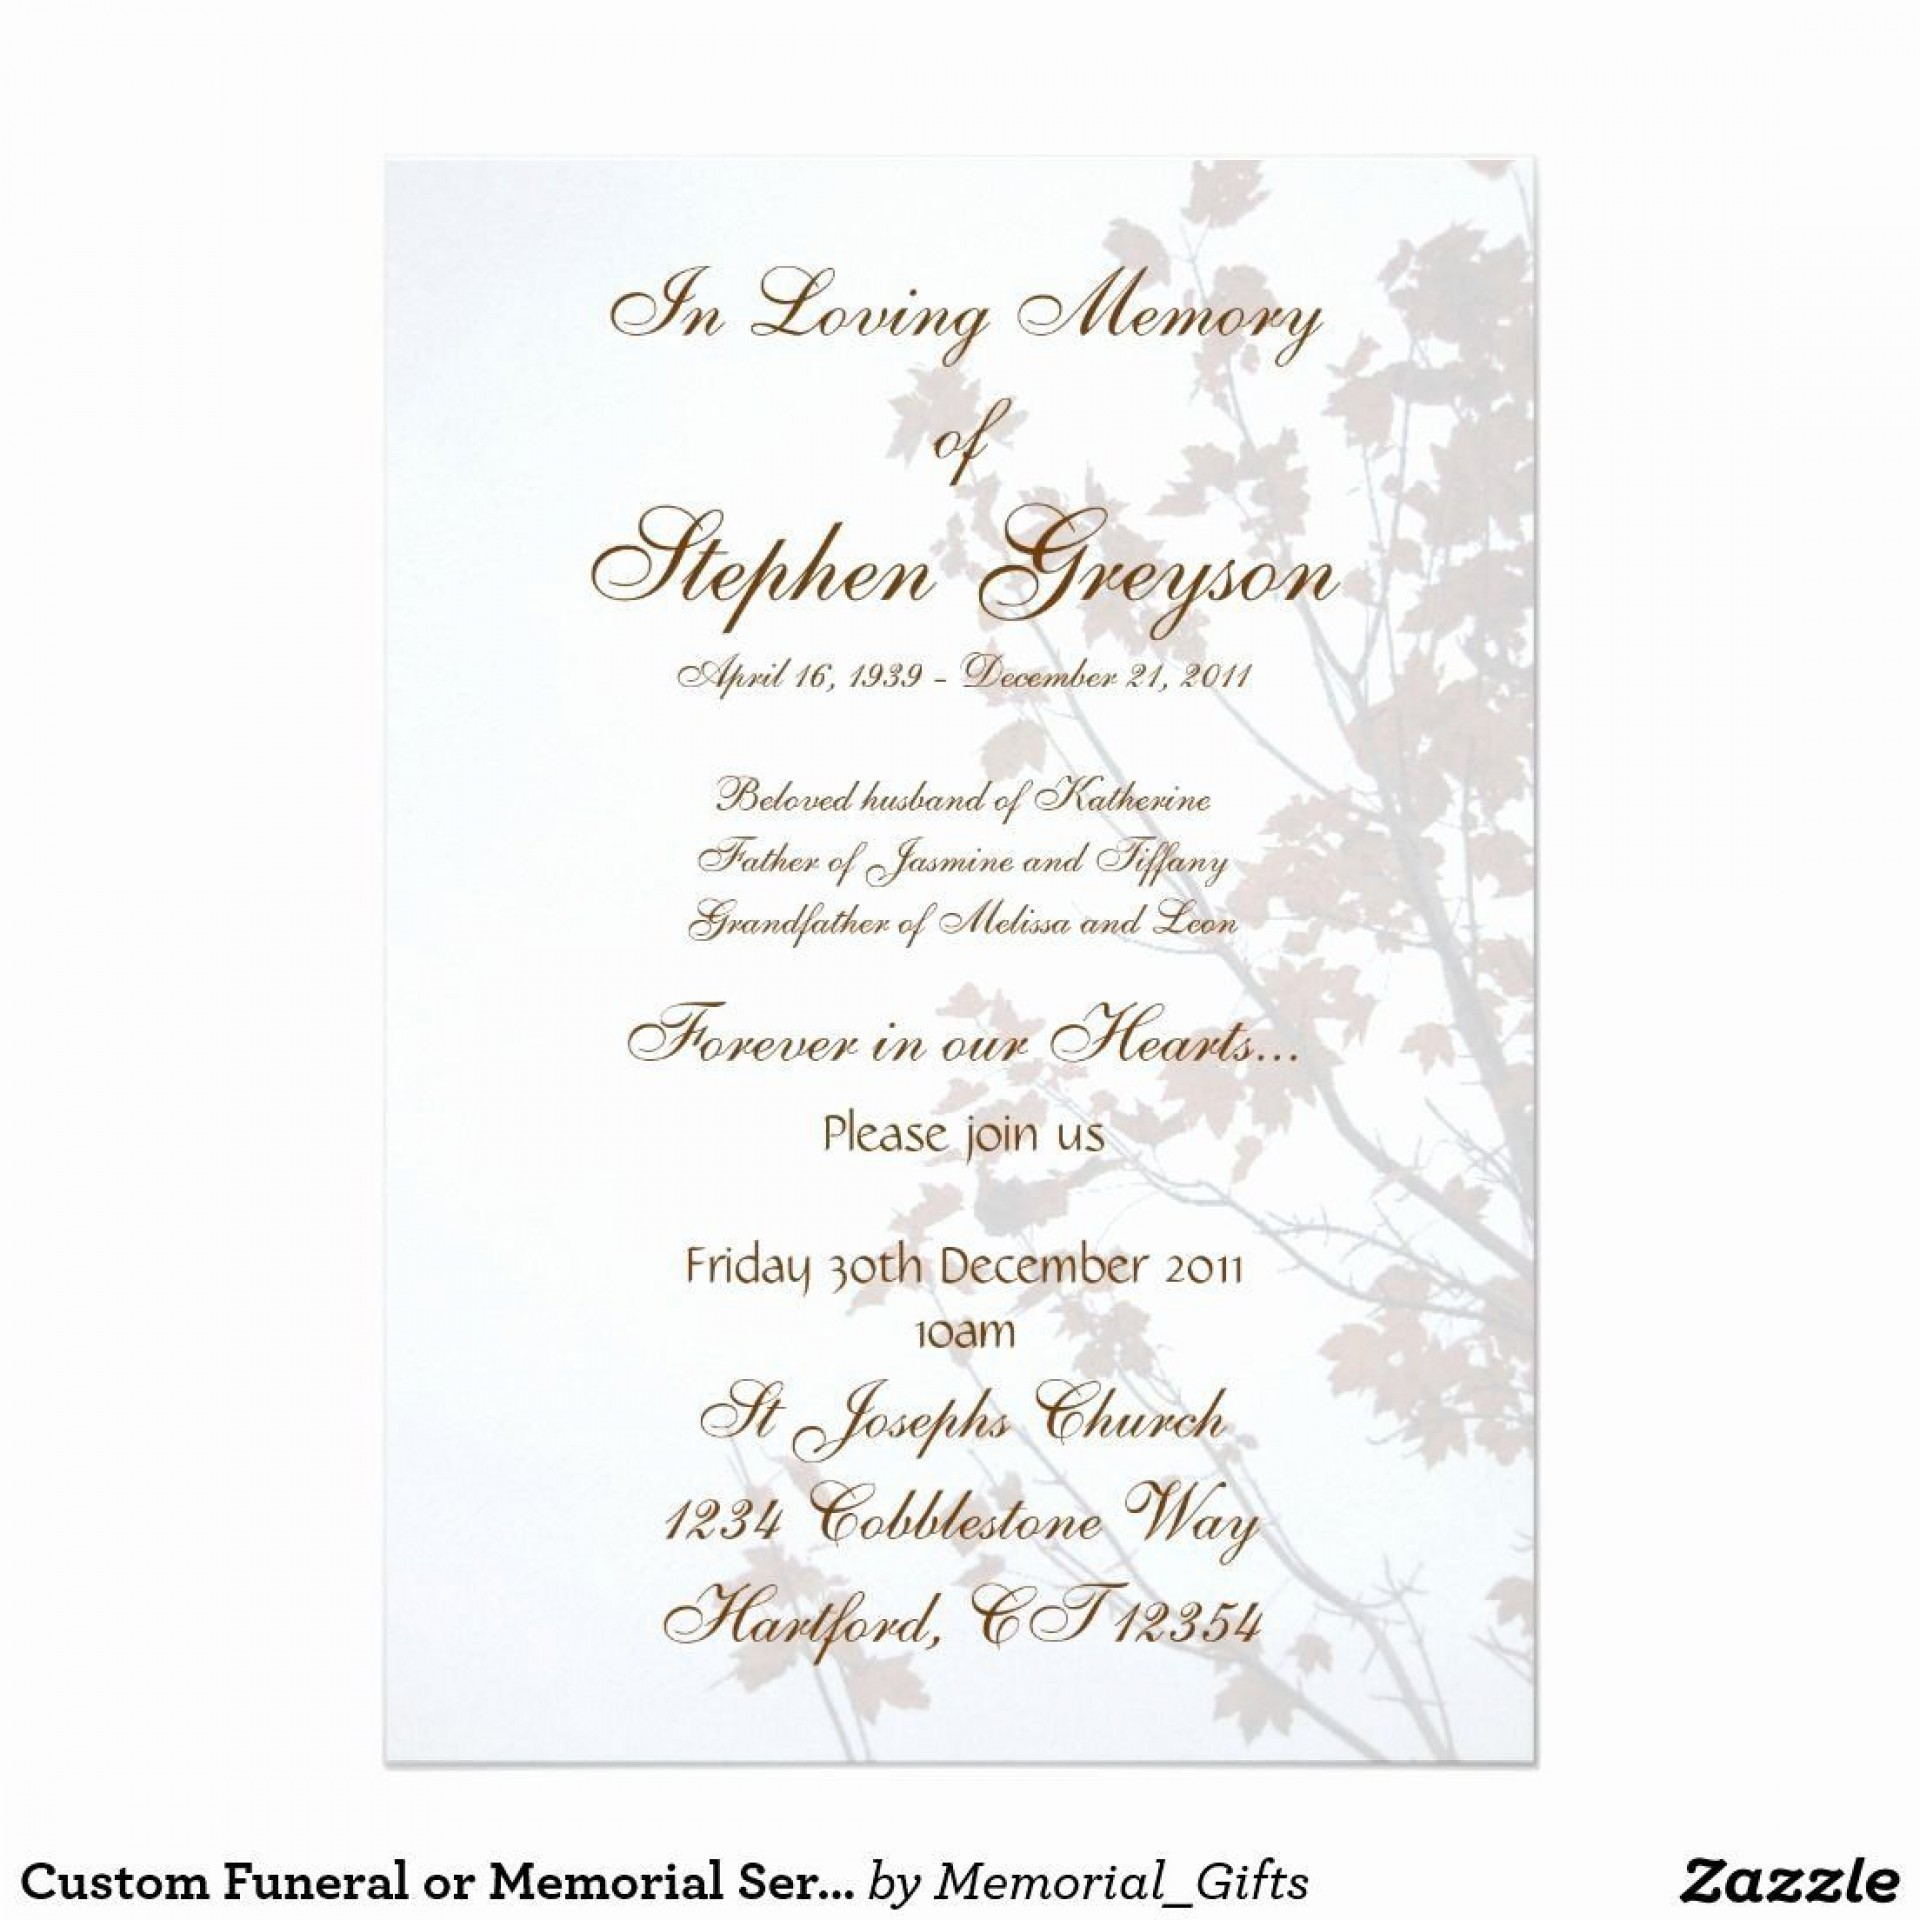 004 Striking Funeral Invitation Template Free High Def  Memorial Service Card Reception1920